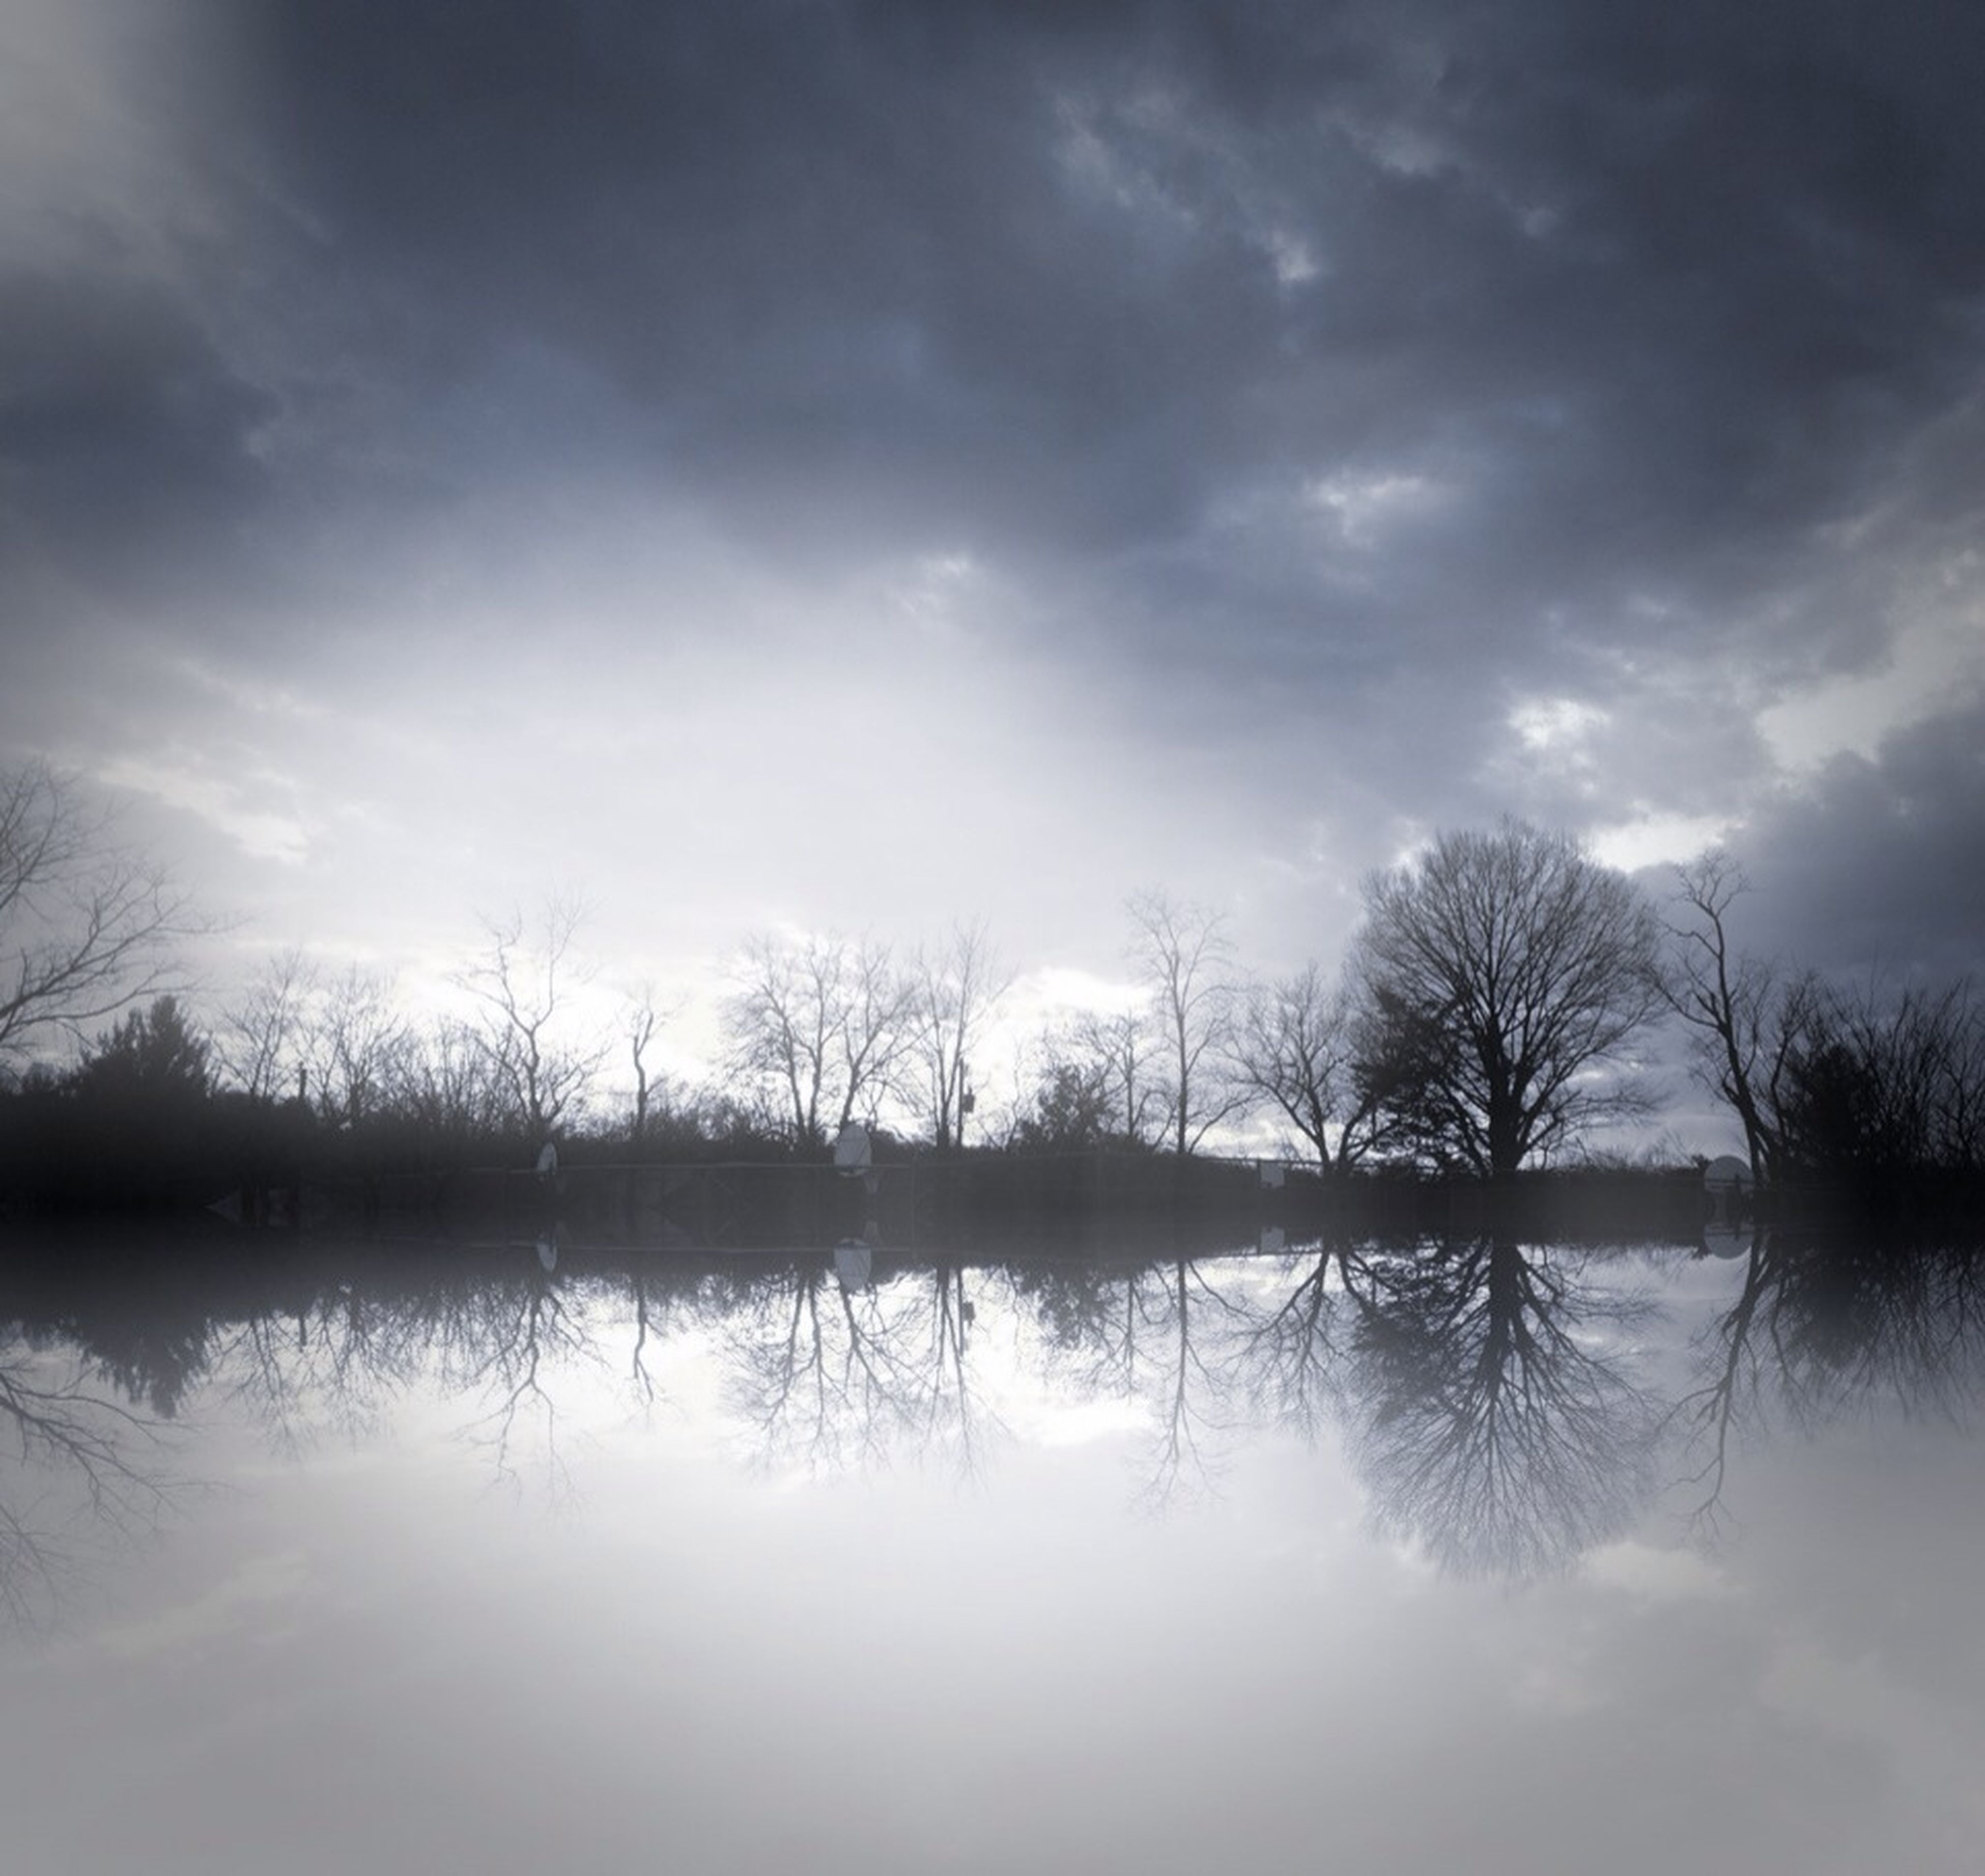 sky, water, tranquility, tranquil scene, cloud - sky, lake, tree, scenics, reflection, beauty in nature, silhouette, cloudy, nature, cloud, waterfront, bare tree, idyllic, sunset, calm, river